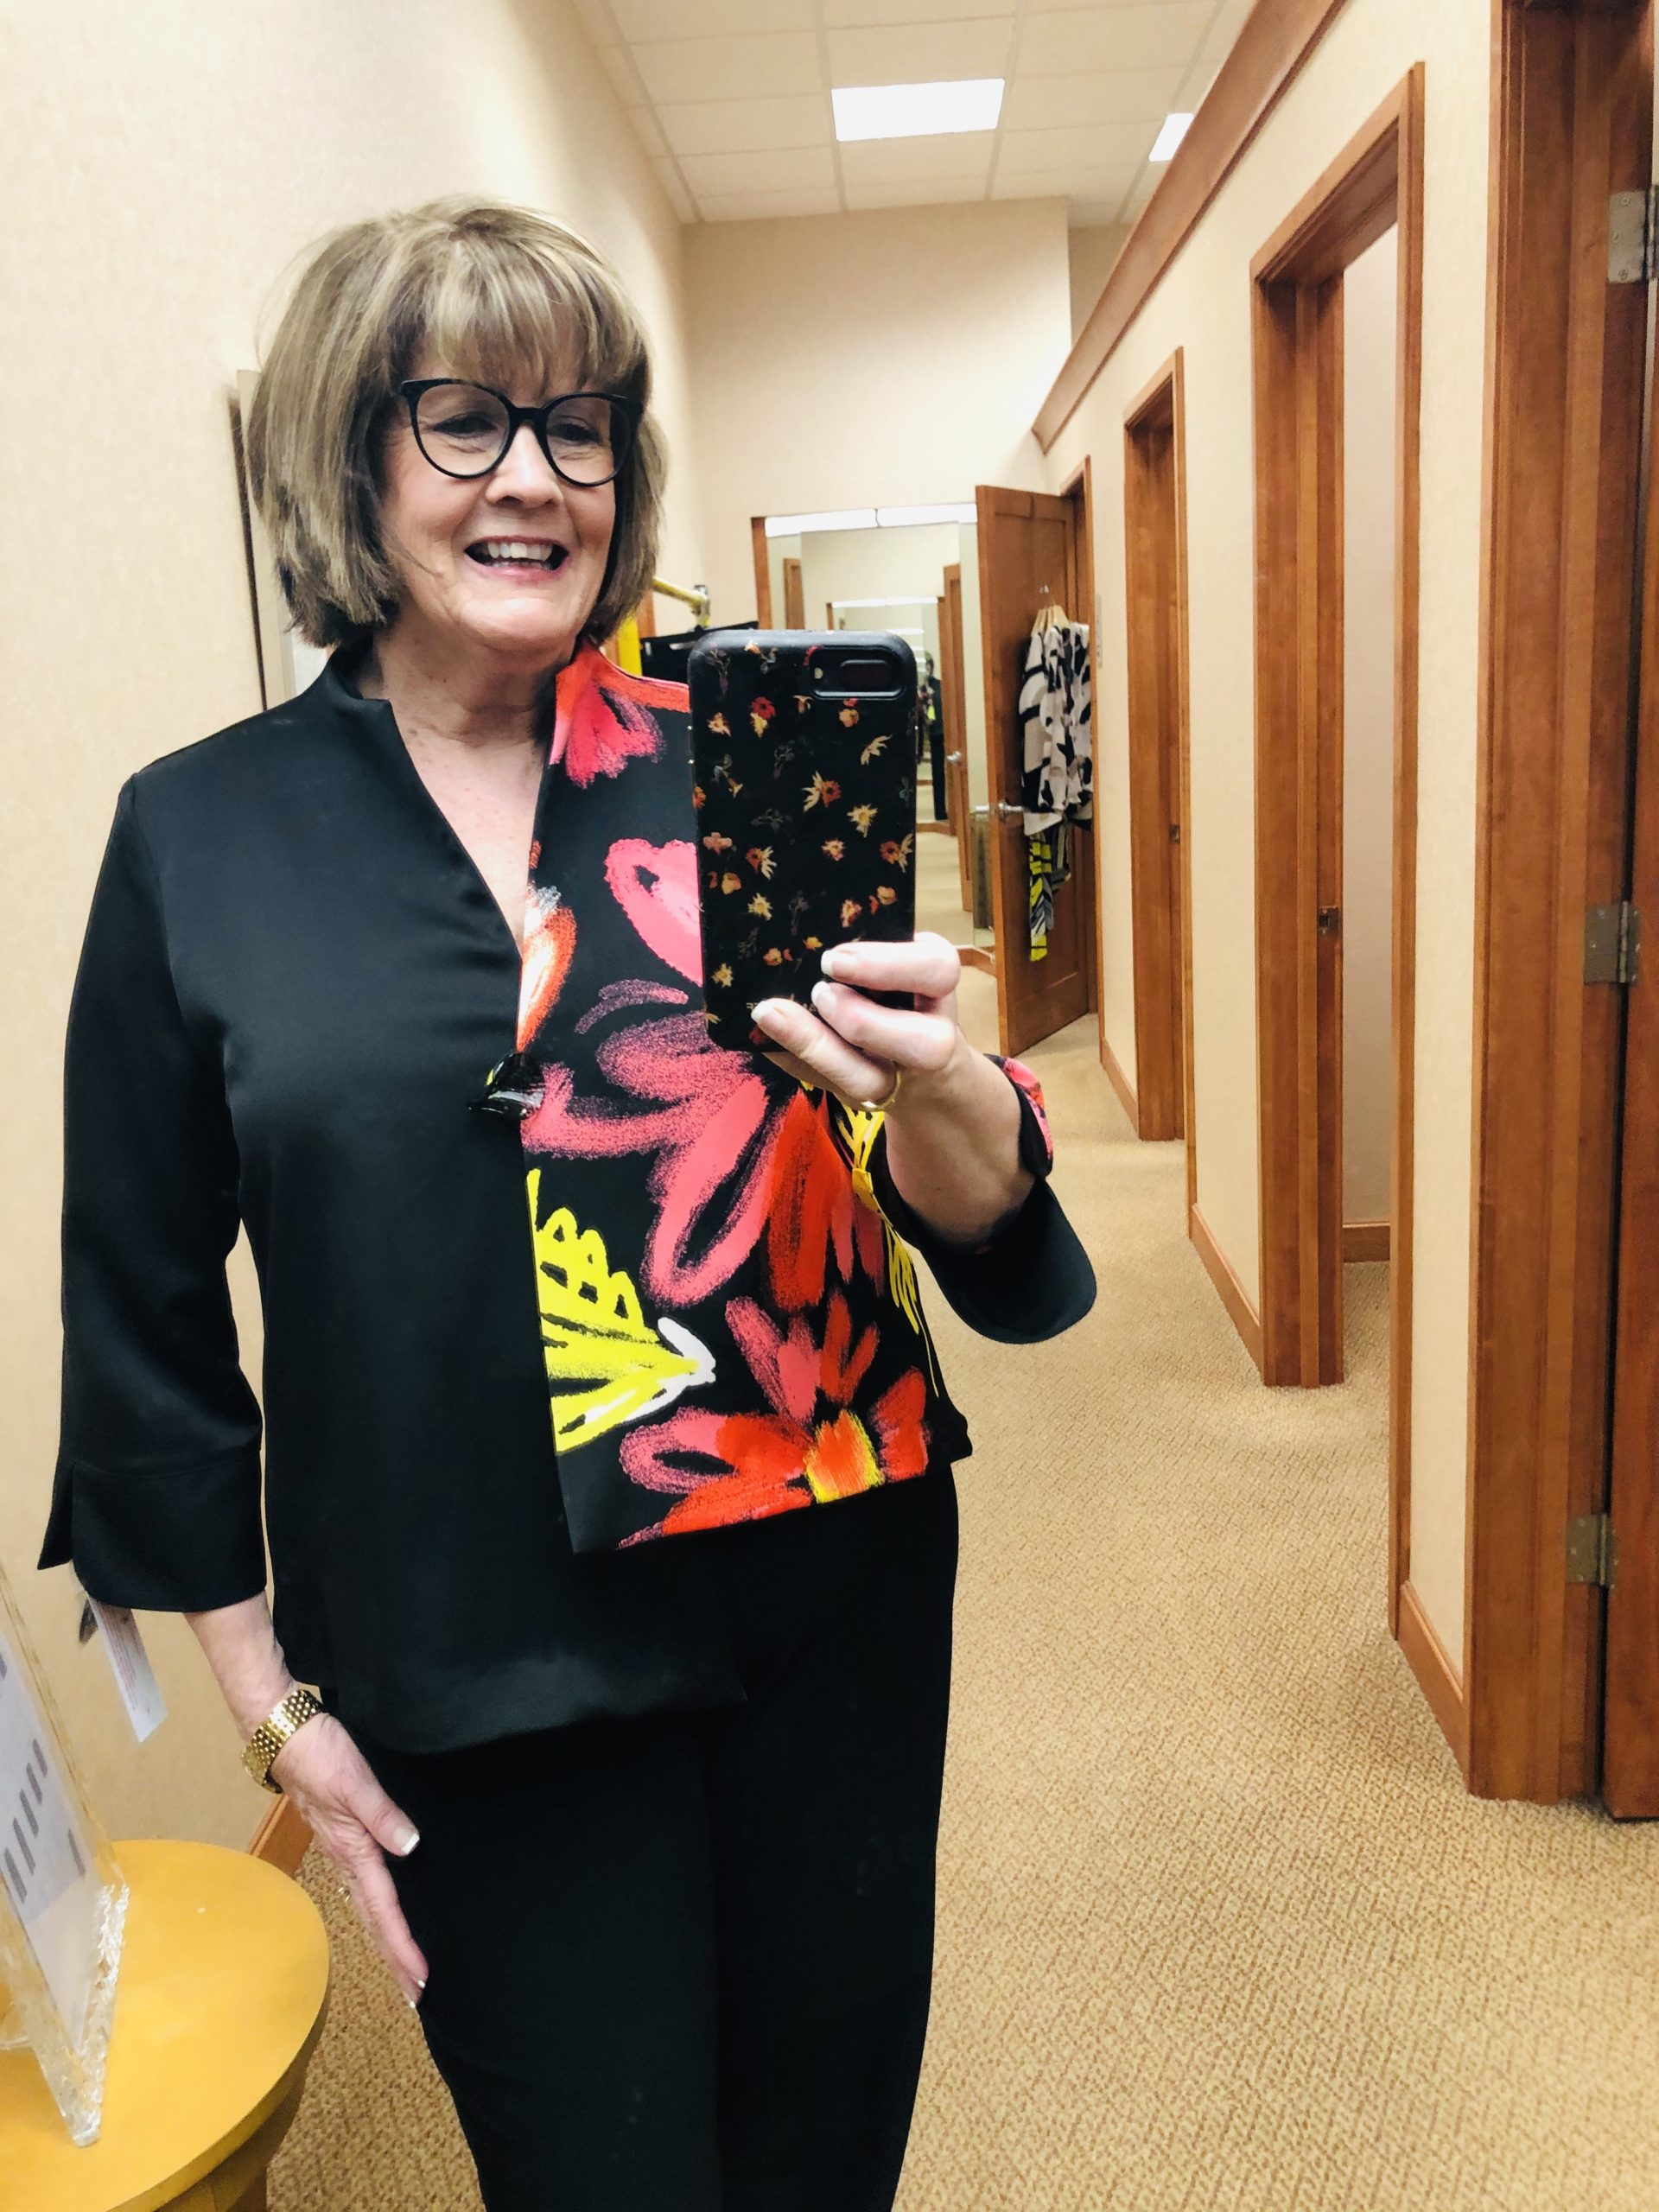 Spring fashion over 50: Color and prints from IC Collection at Dillards